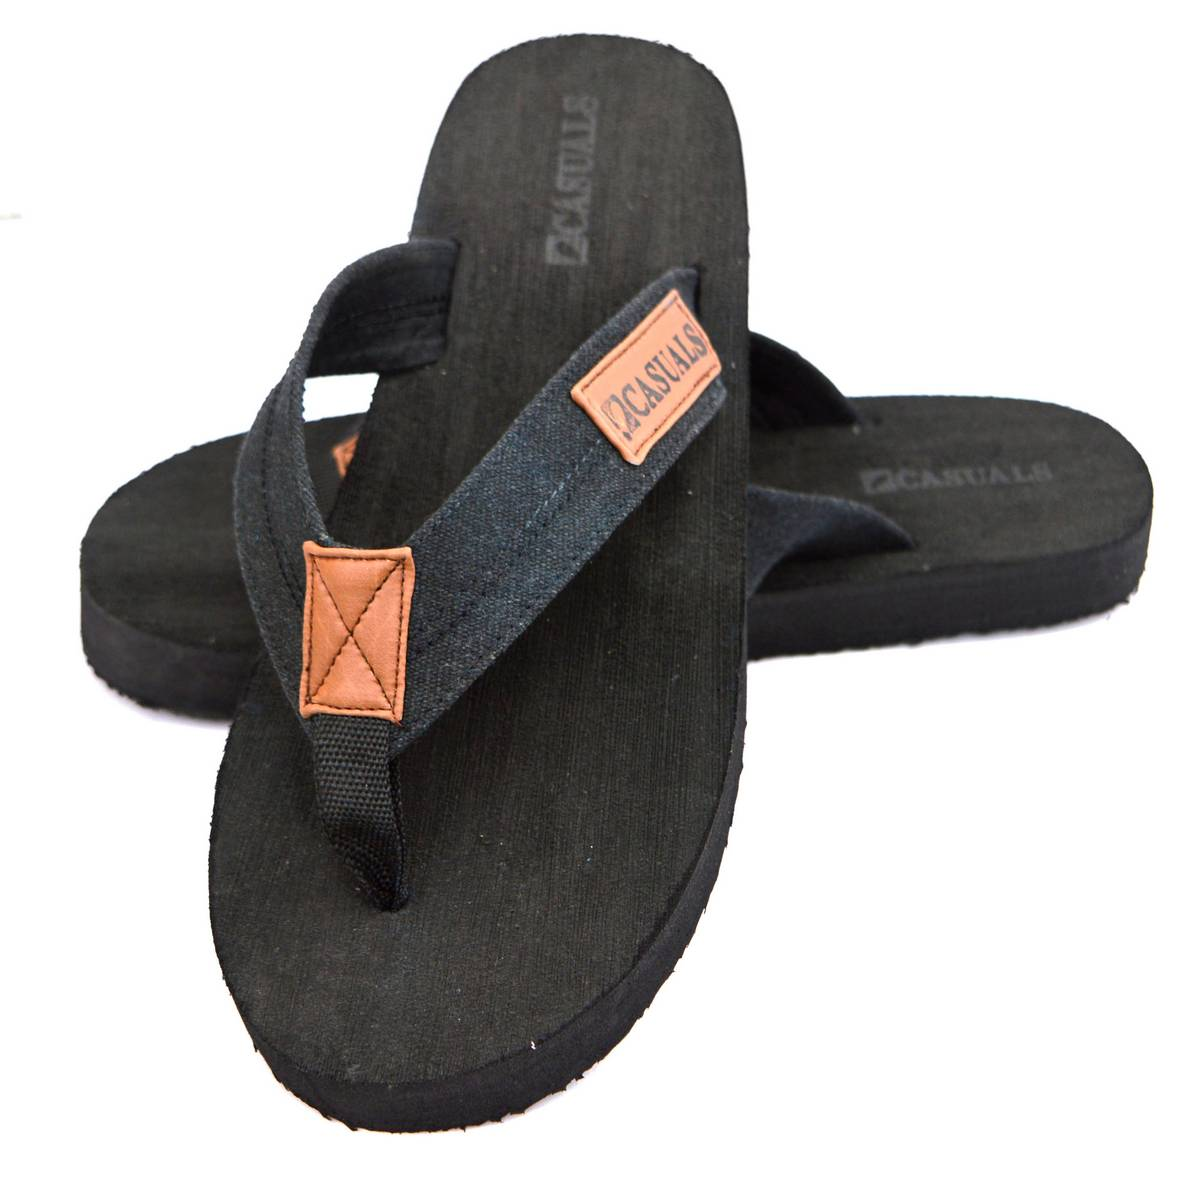 Casuals Hand Crafted Flip-Flops, Thongs Sandals Comfort Slippers for Men Size 6-11